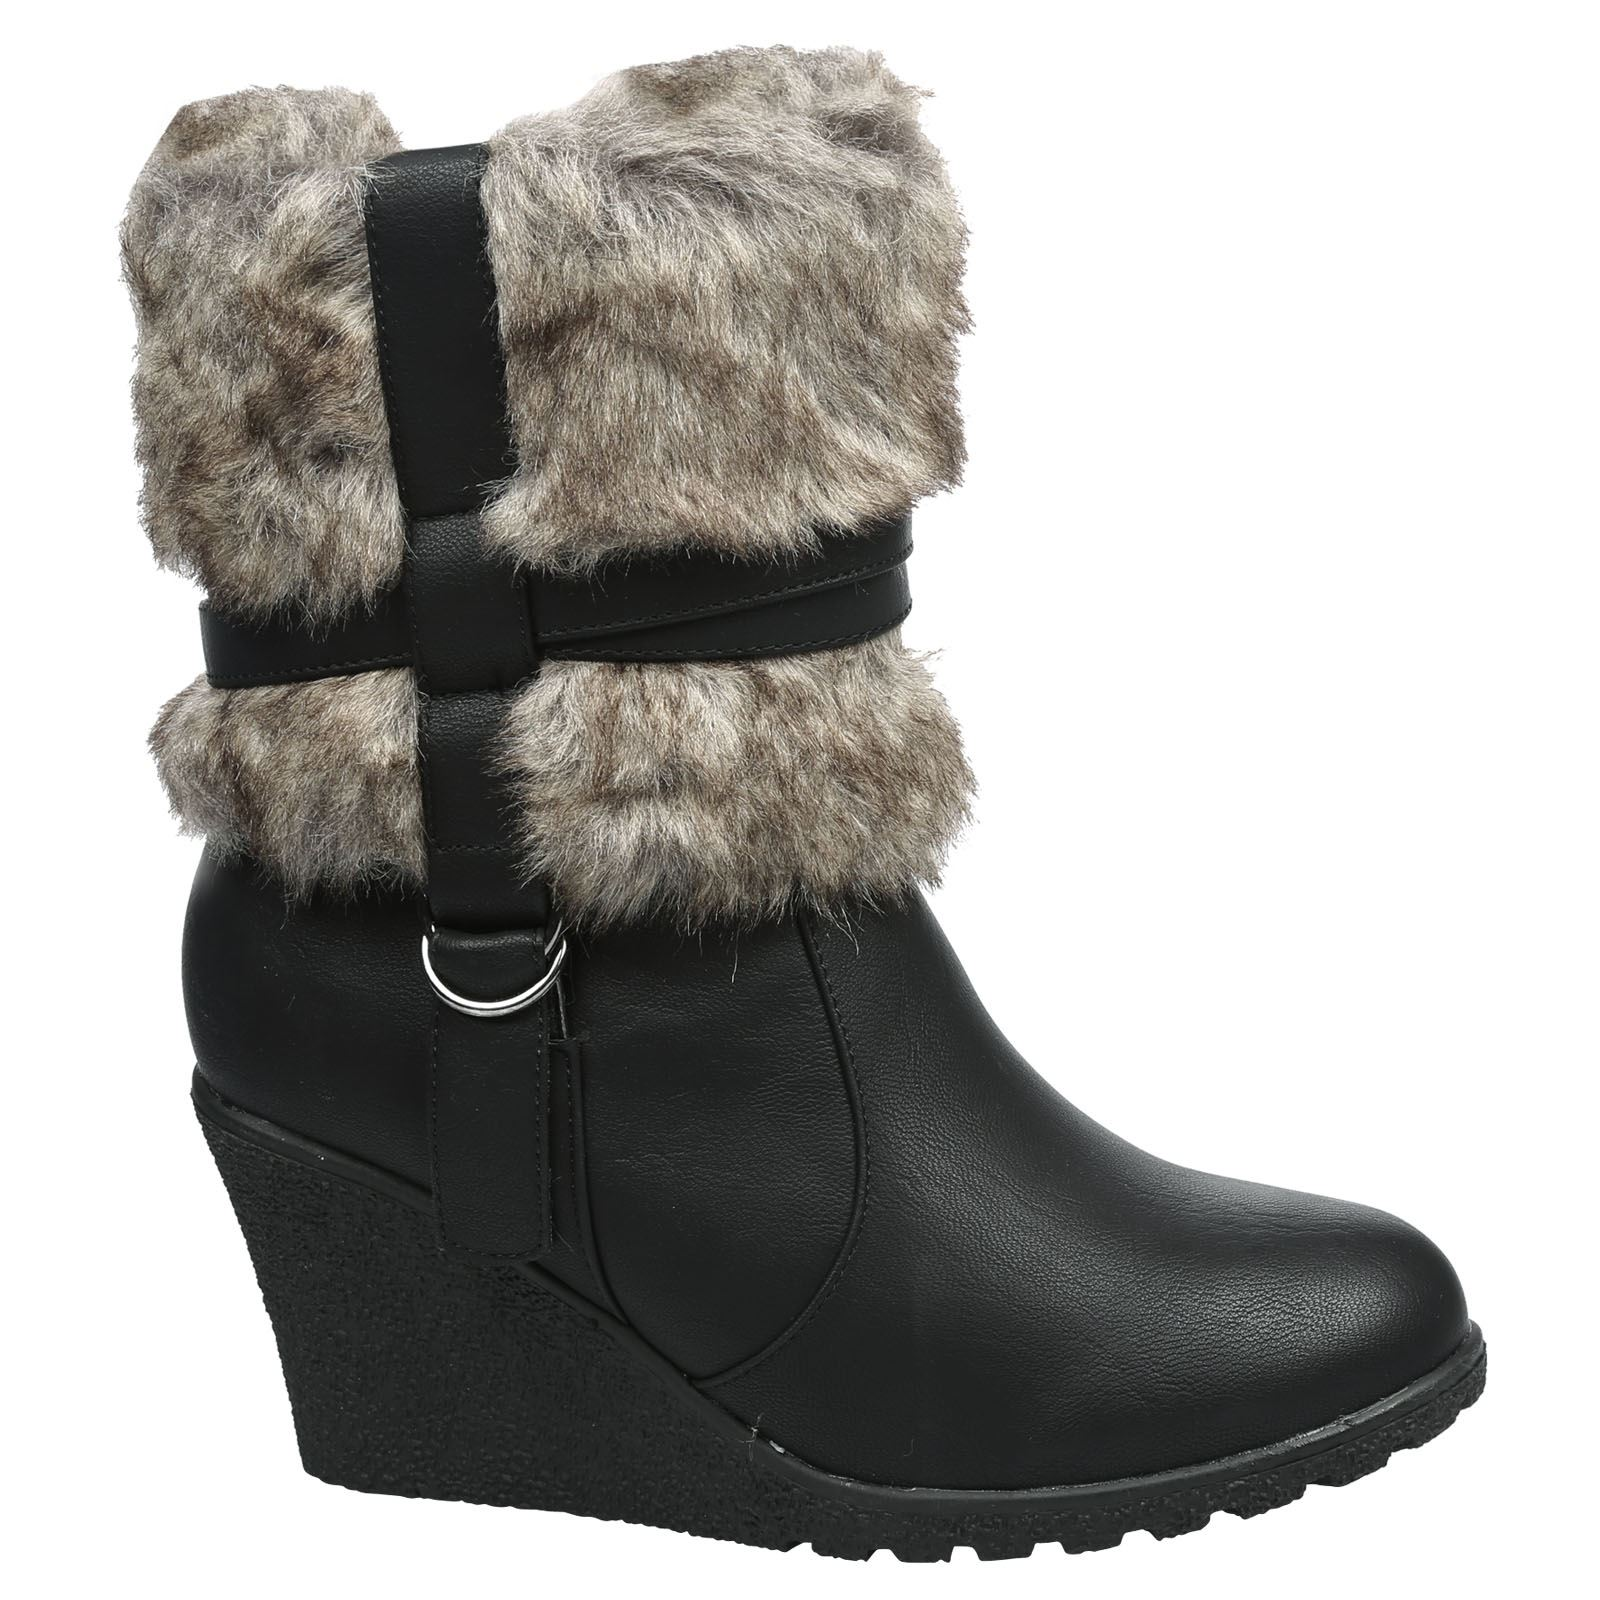 NEW Mujer WEDGE BUCKLE HEEL FUR WINTER LINING LINED ANKLE WINTER FUR botas  Talla 3-8 4ced99 8a4d8e14d5